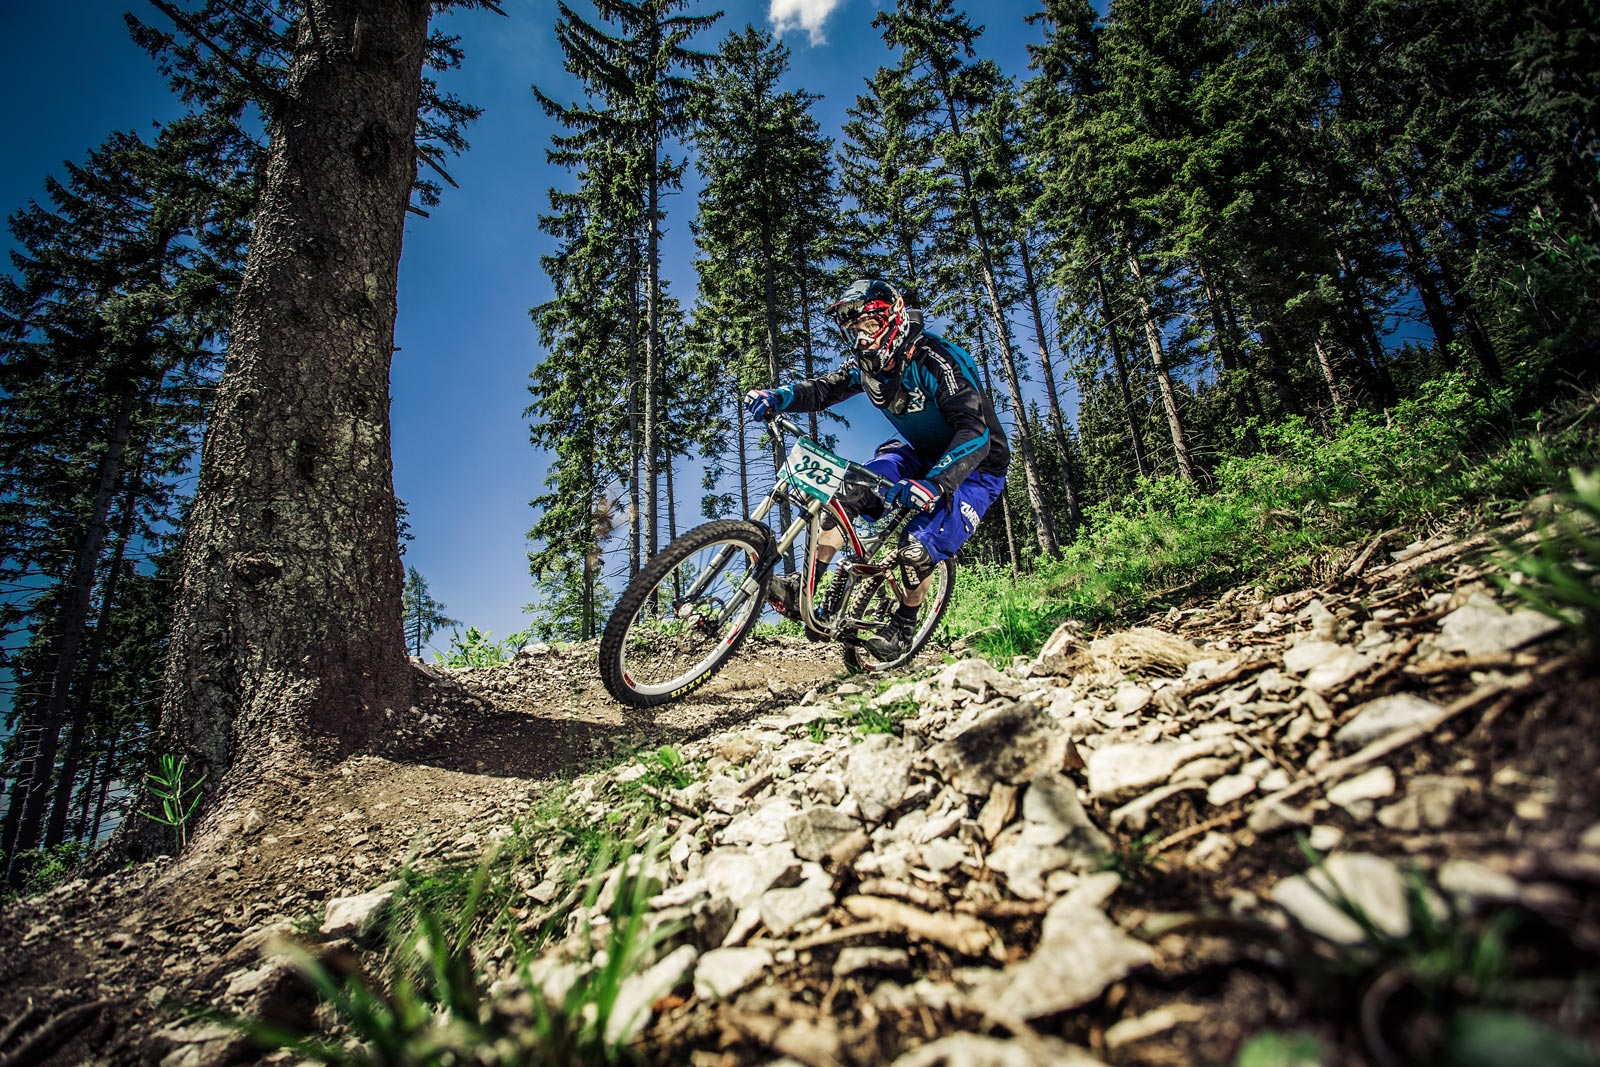 schoeckl-trail-area-mountainbike-downhill-bikepark